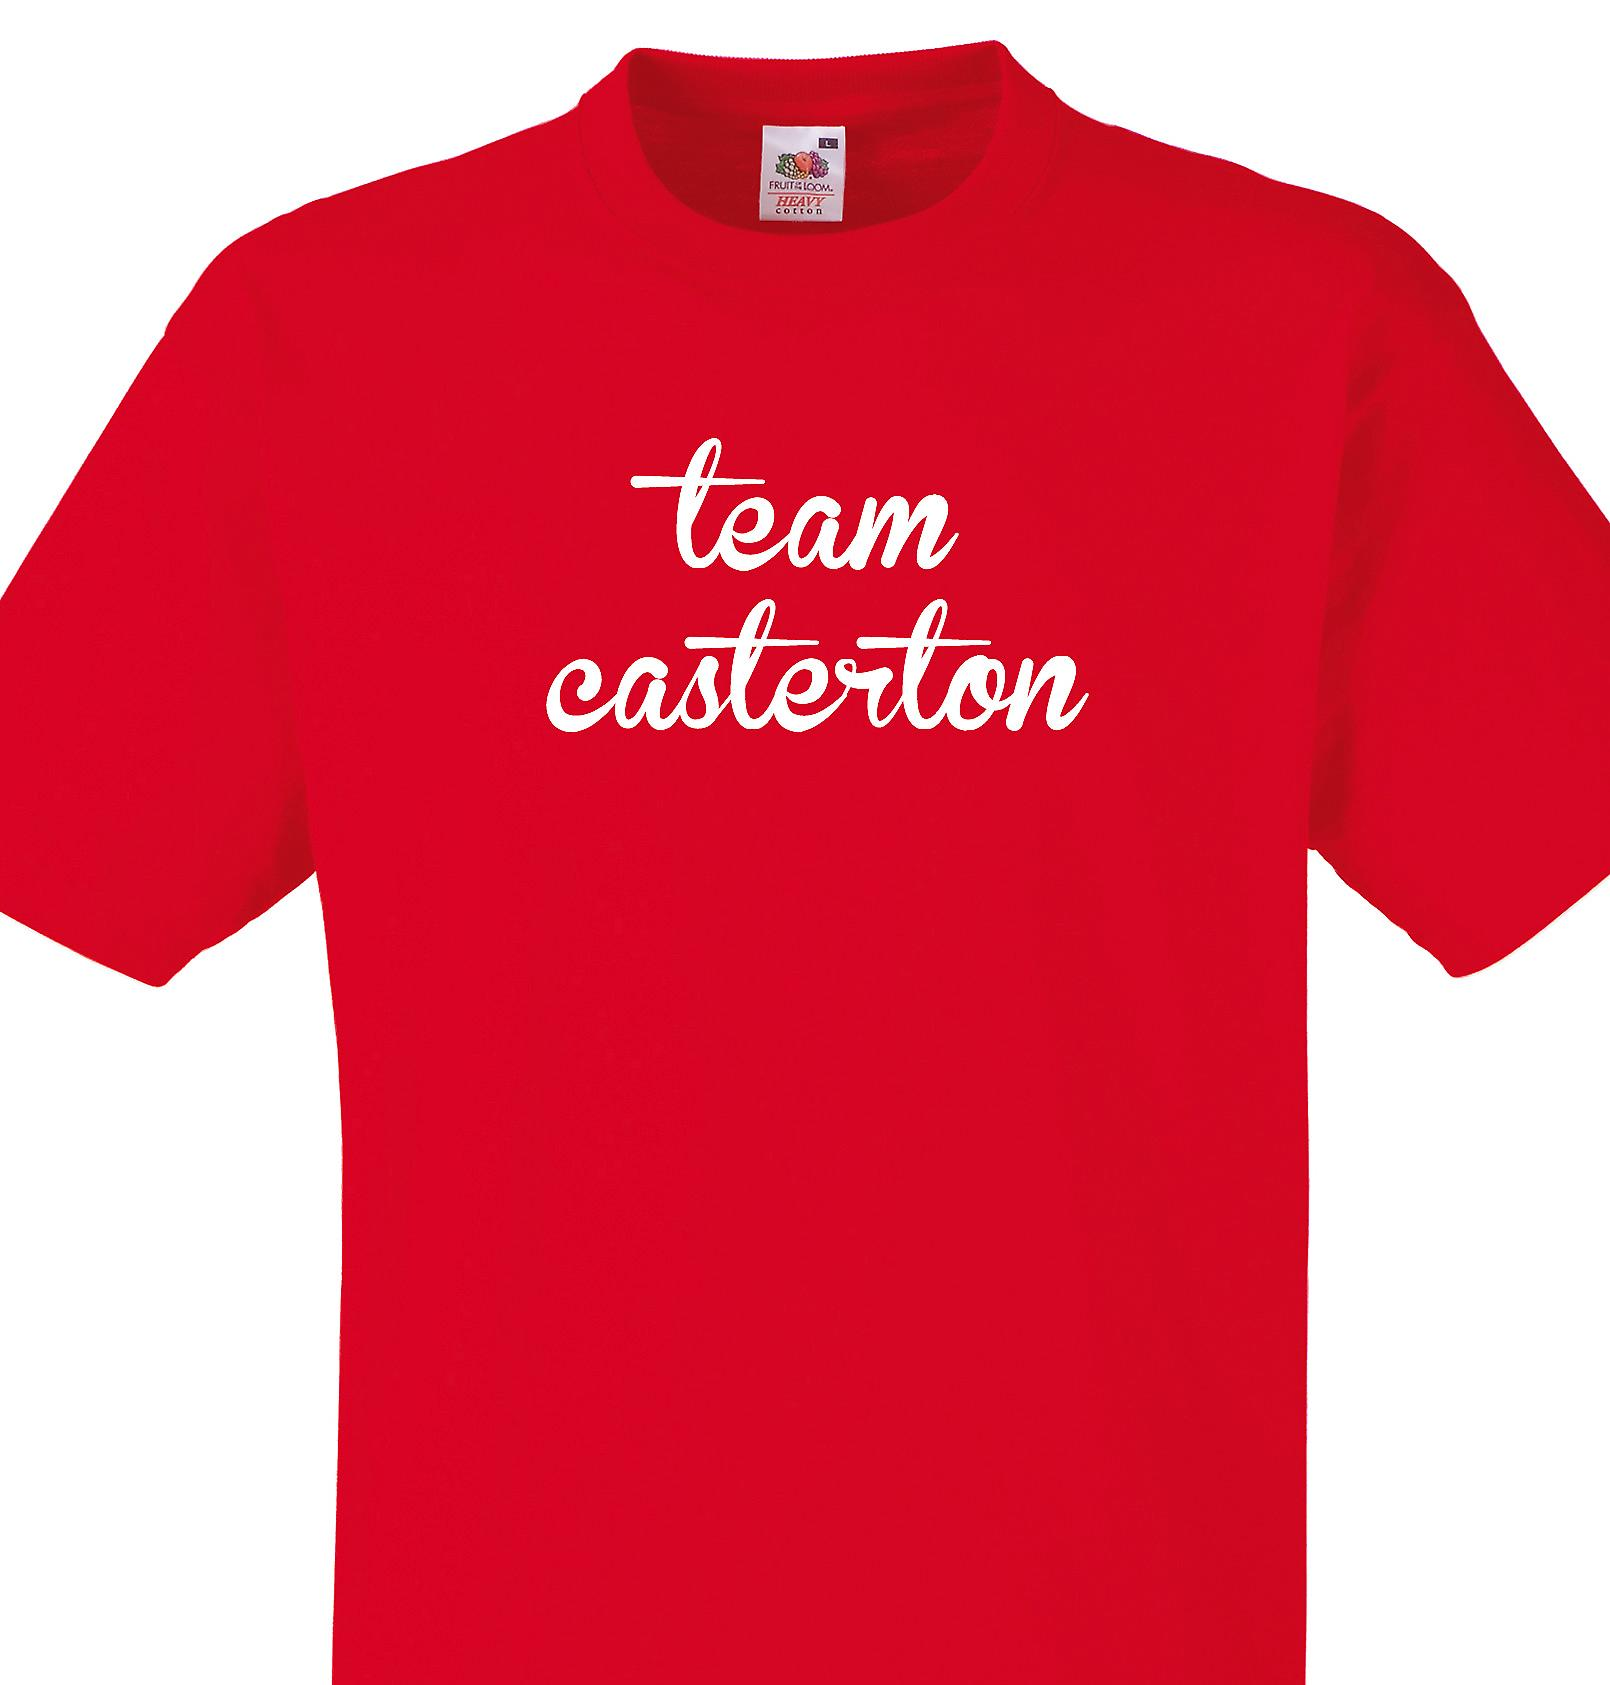 Team Casterton Red T shirt